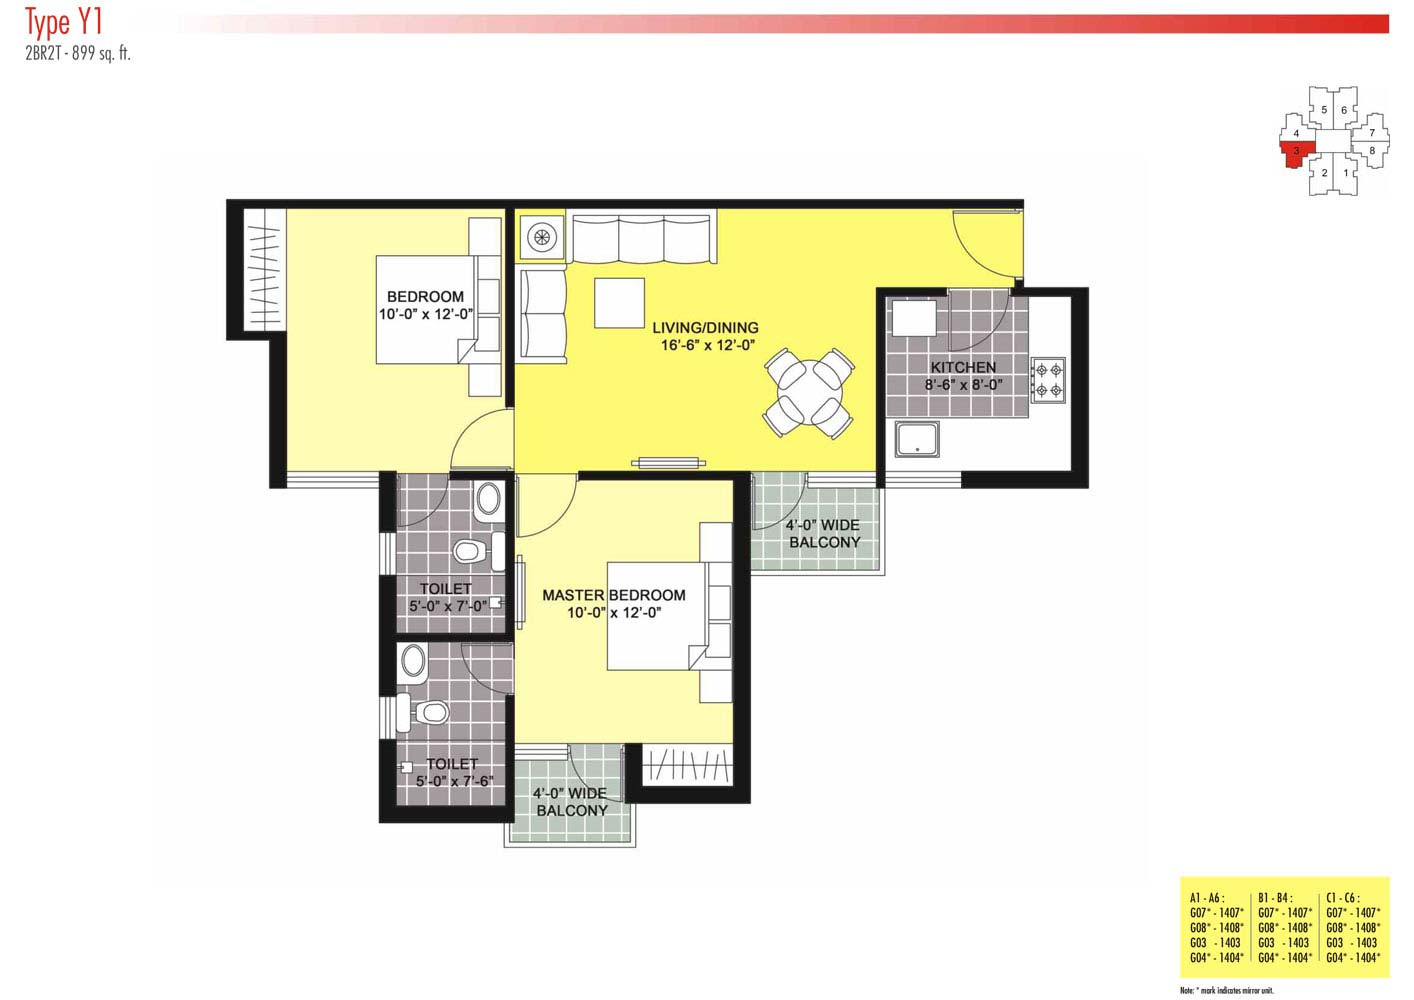 Floor Plans-2BR2T-899 sq.ft.